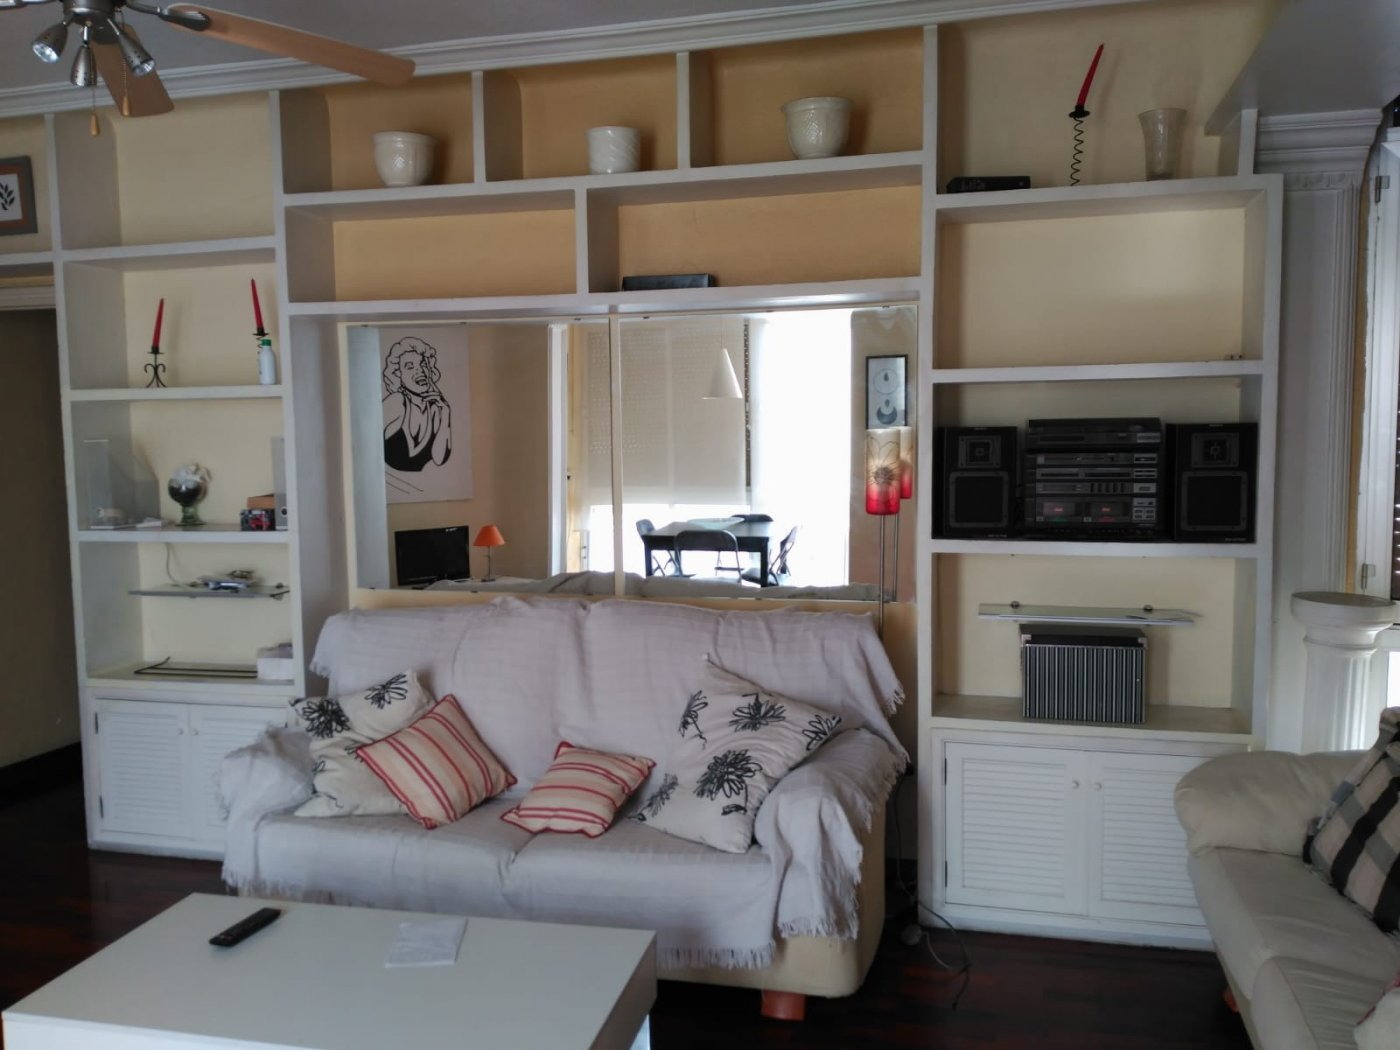 Gallery Image 4 of Superb 3 Bedroom Apartment in the heart of Murcia city